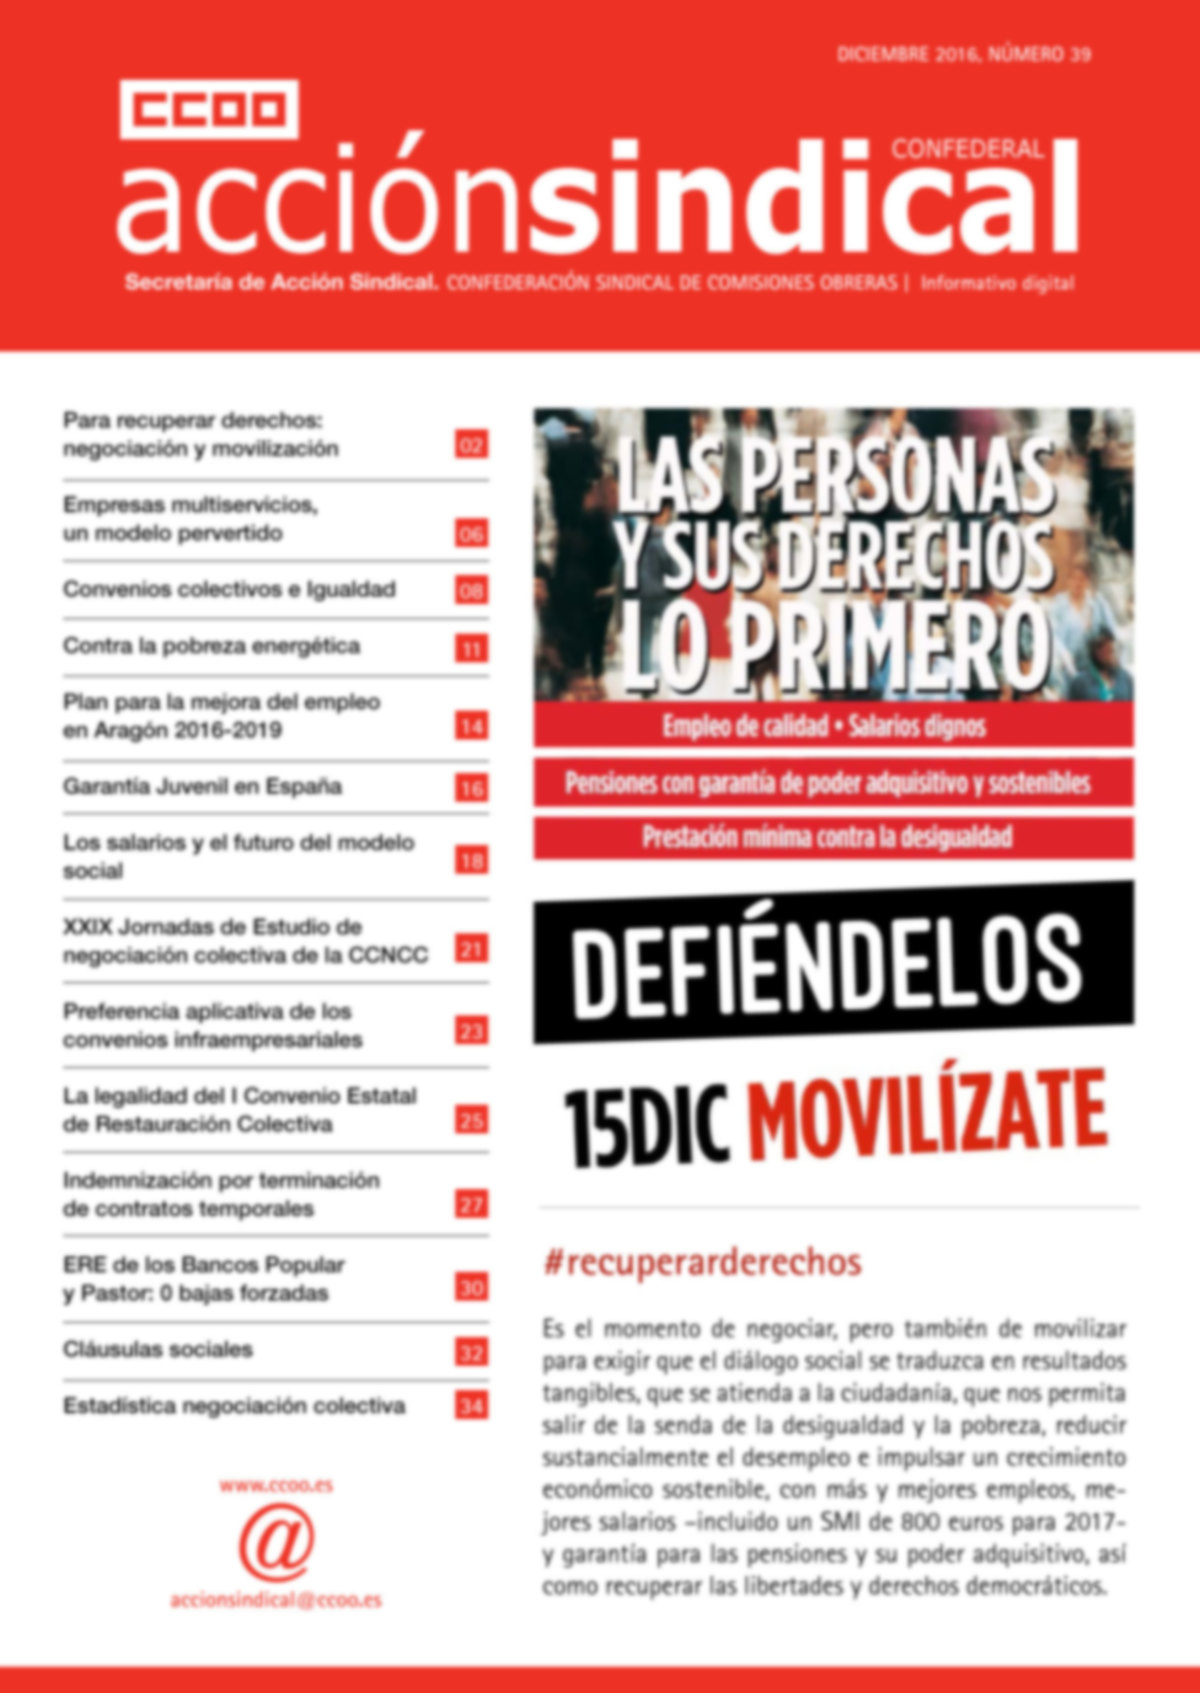 Revista de Acción Sindical nº 39